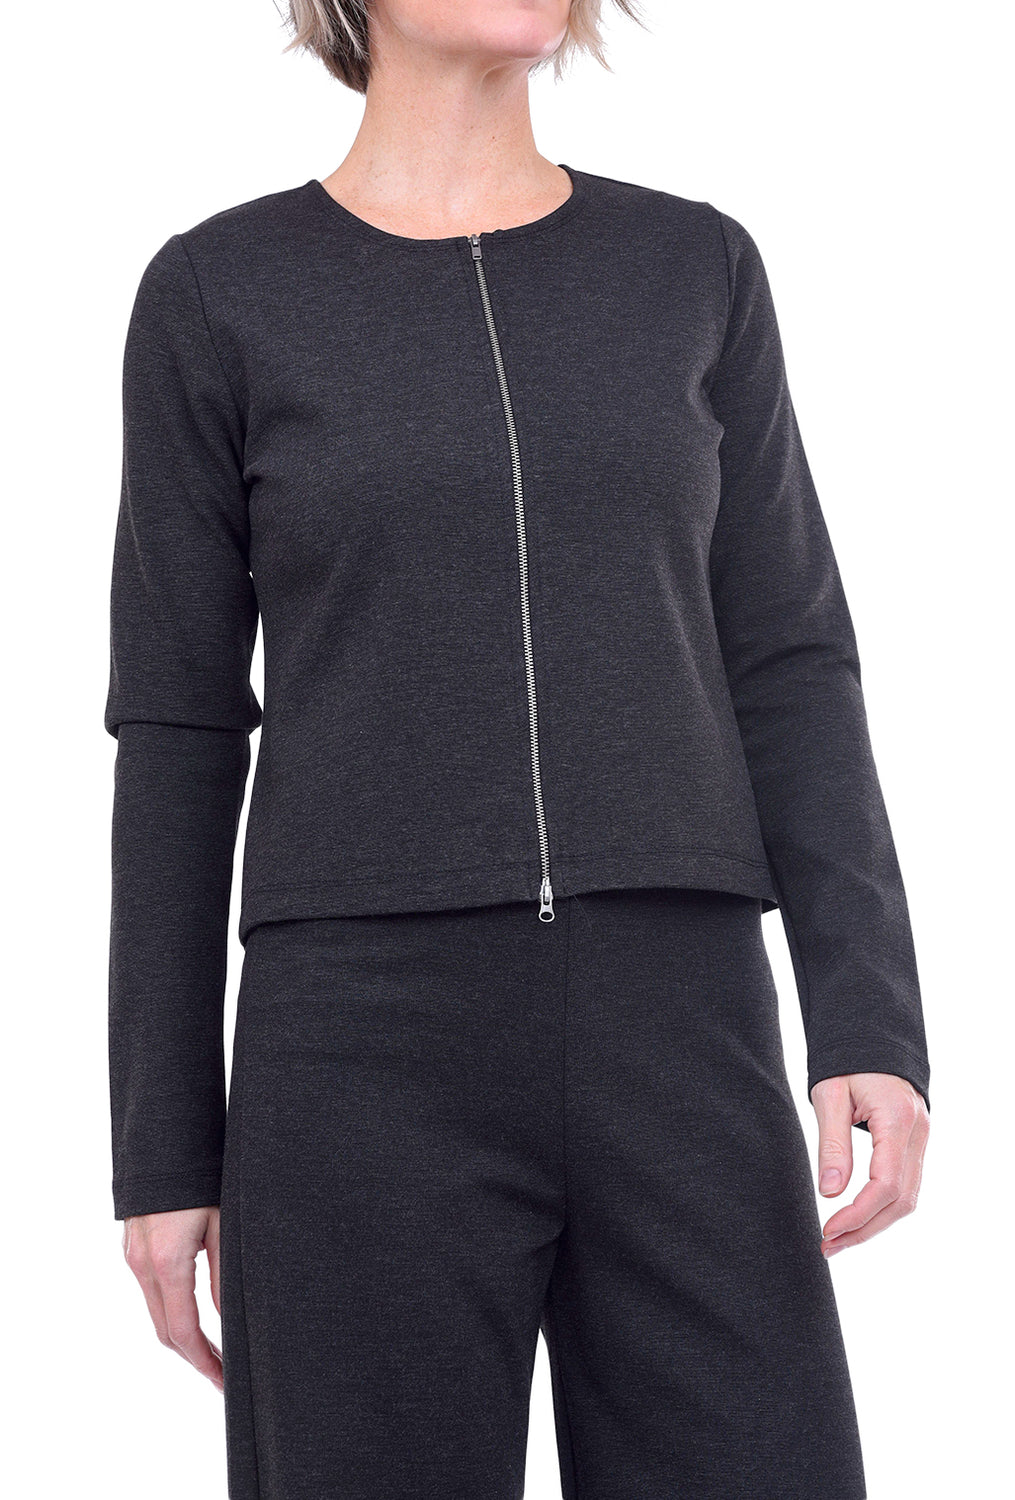 Bryn Walker Betz Zip Cardie, Gray